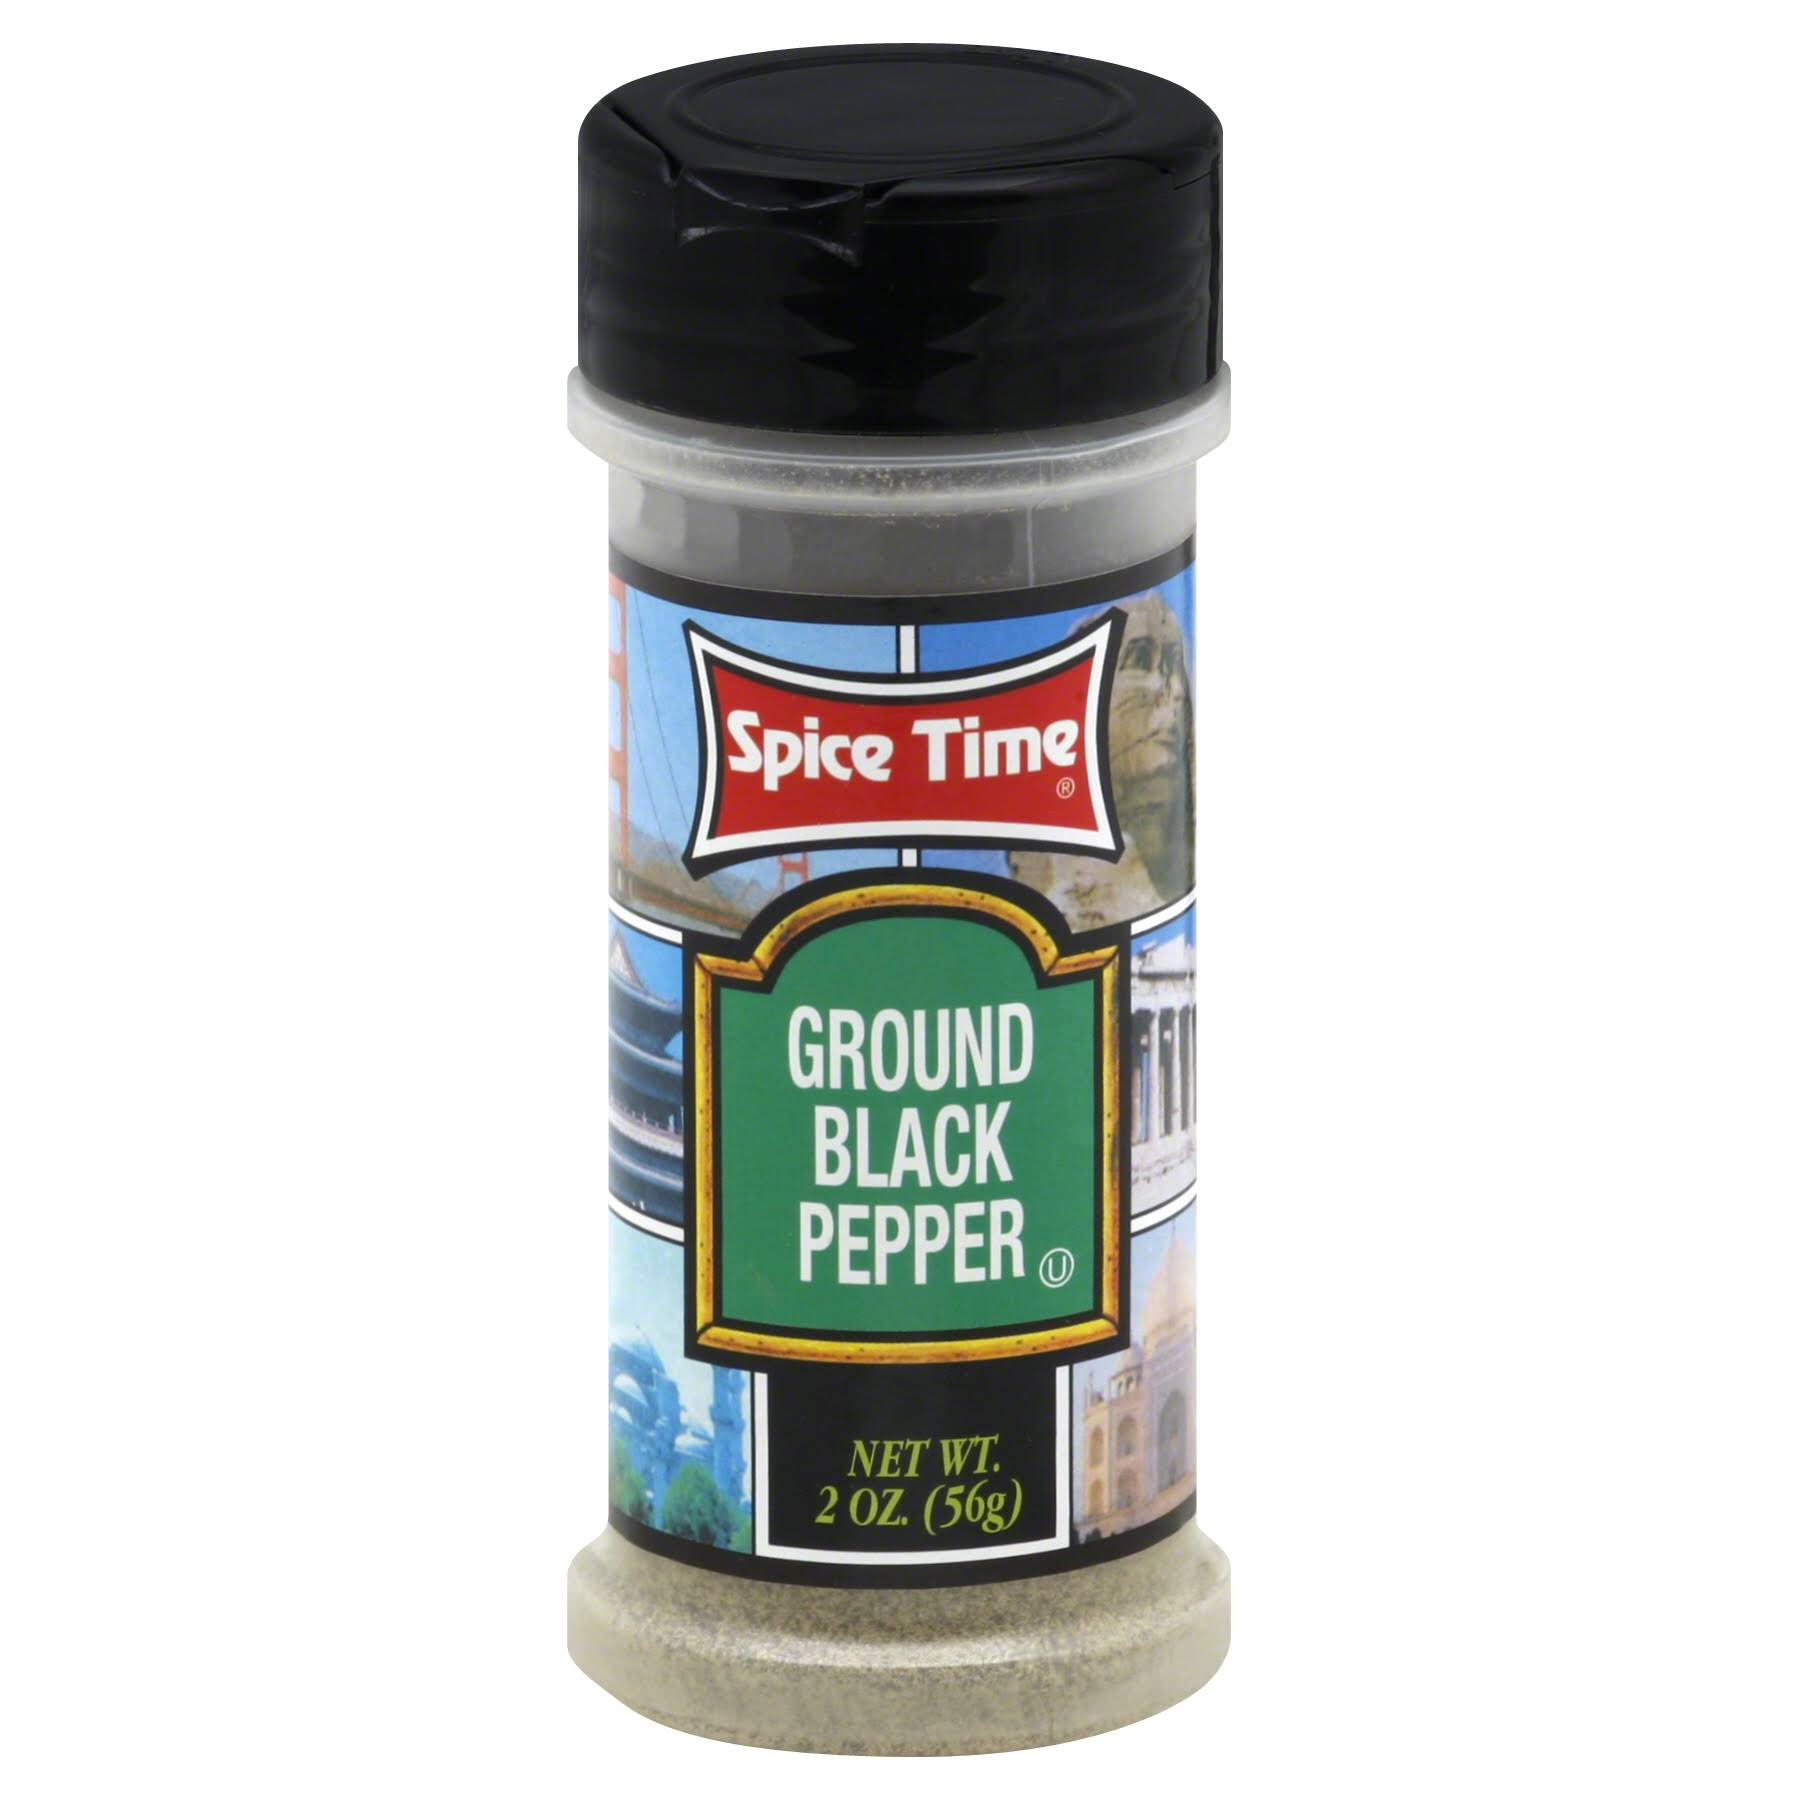 Spice Time Ground Black Pepper - 2oz